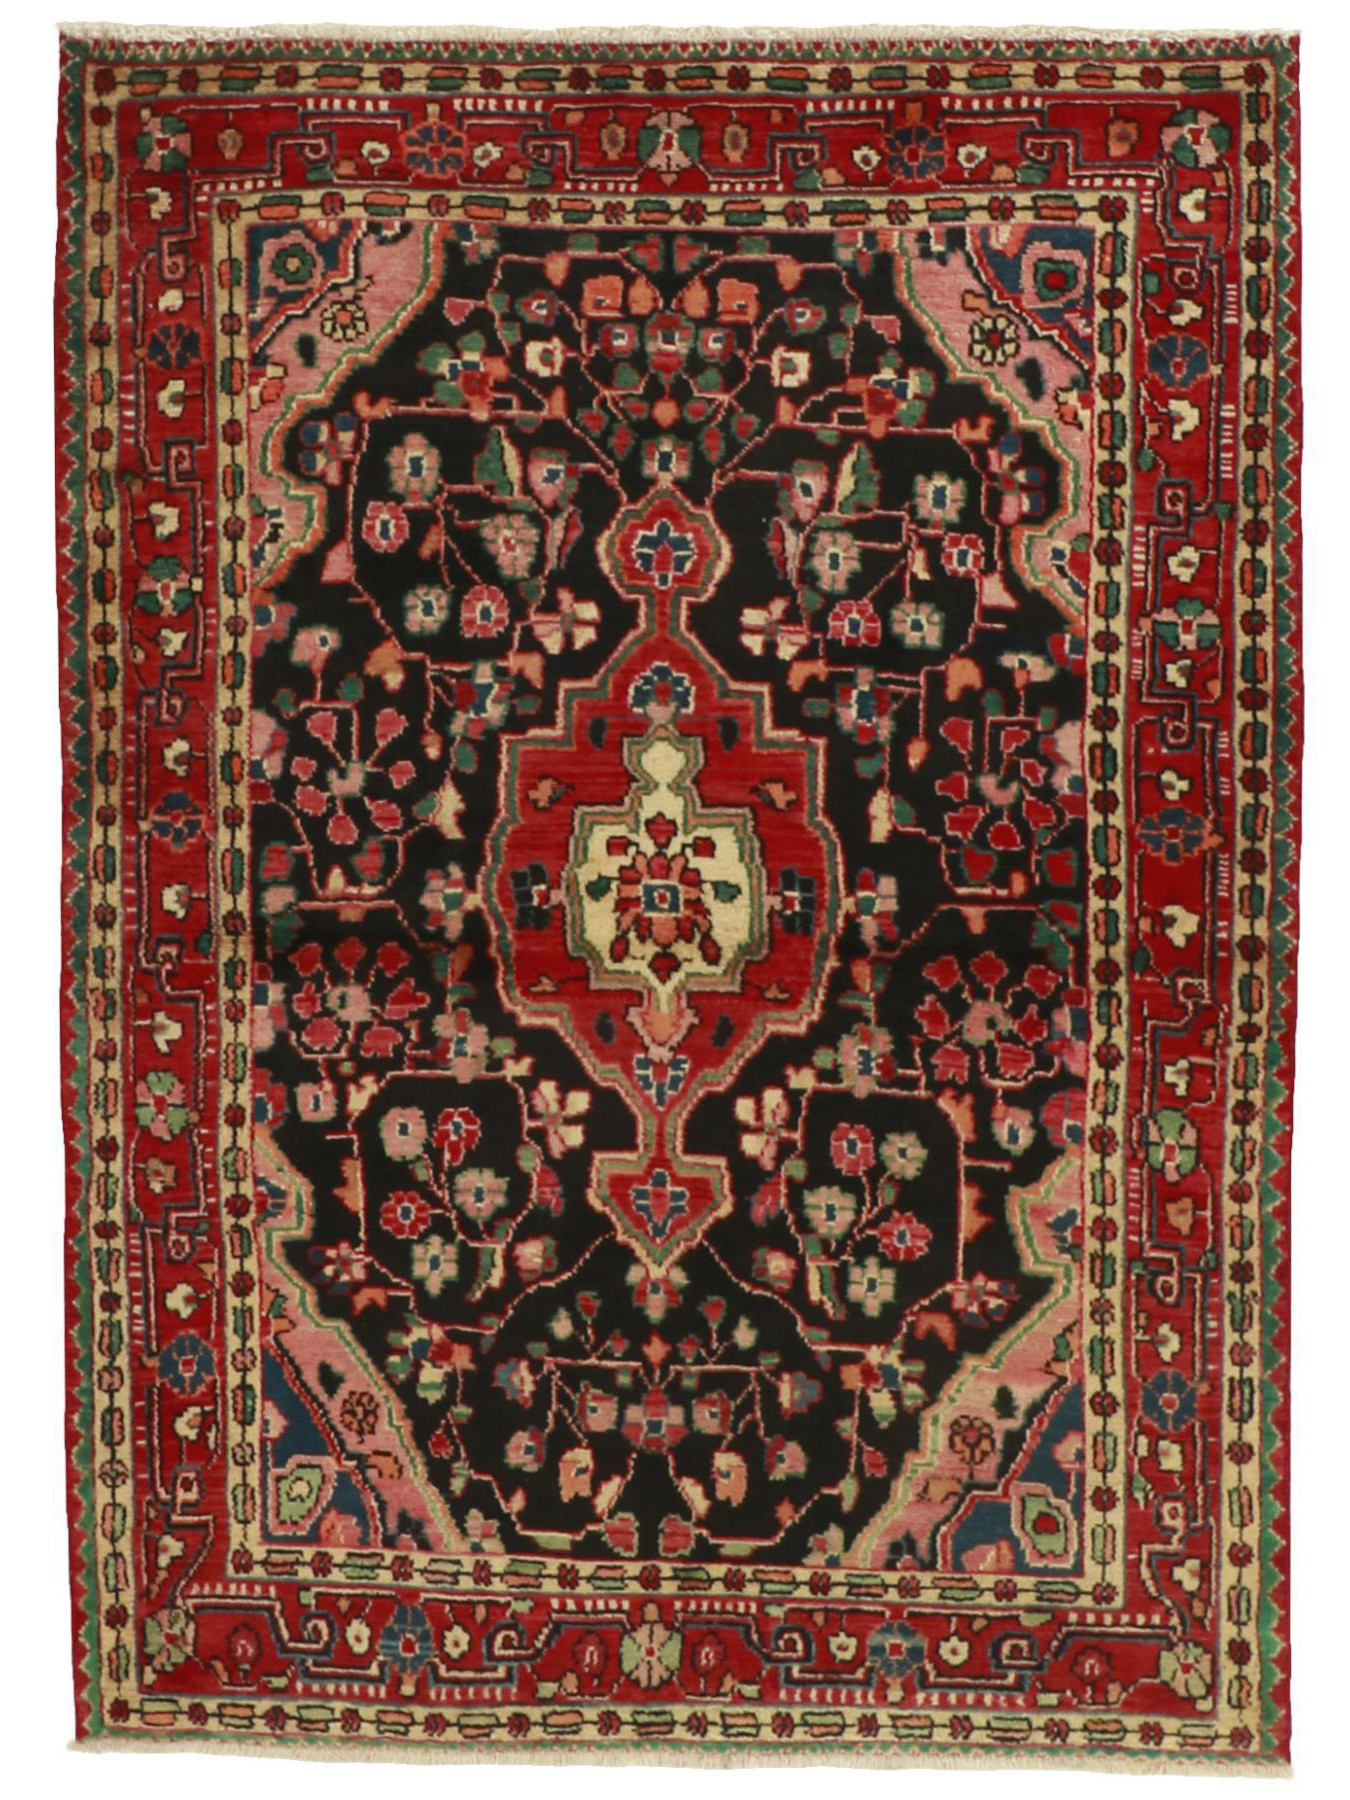 Persian carpets - Jozan